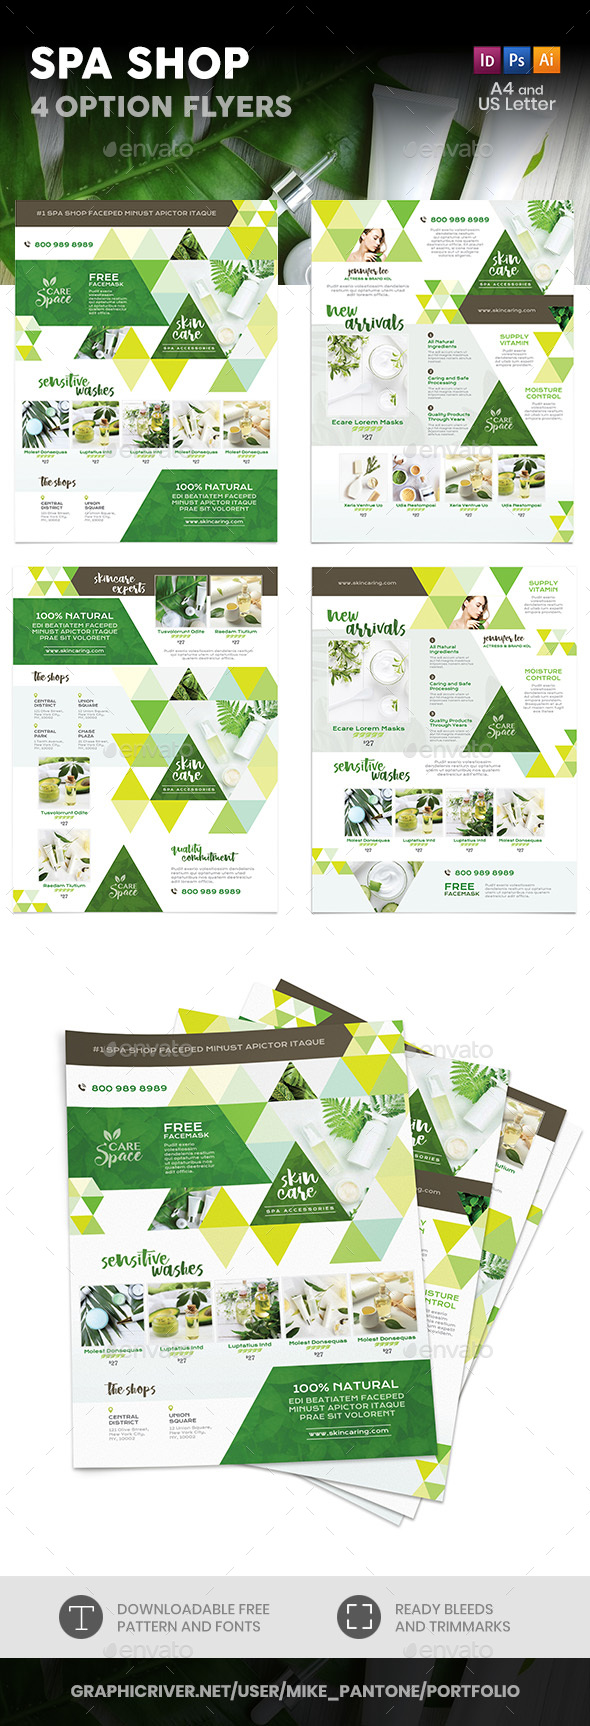 Spa Shop Flyers – 4 Options - Corporate Flyers